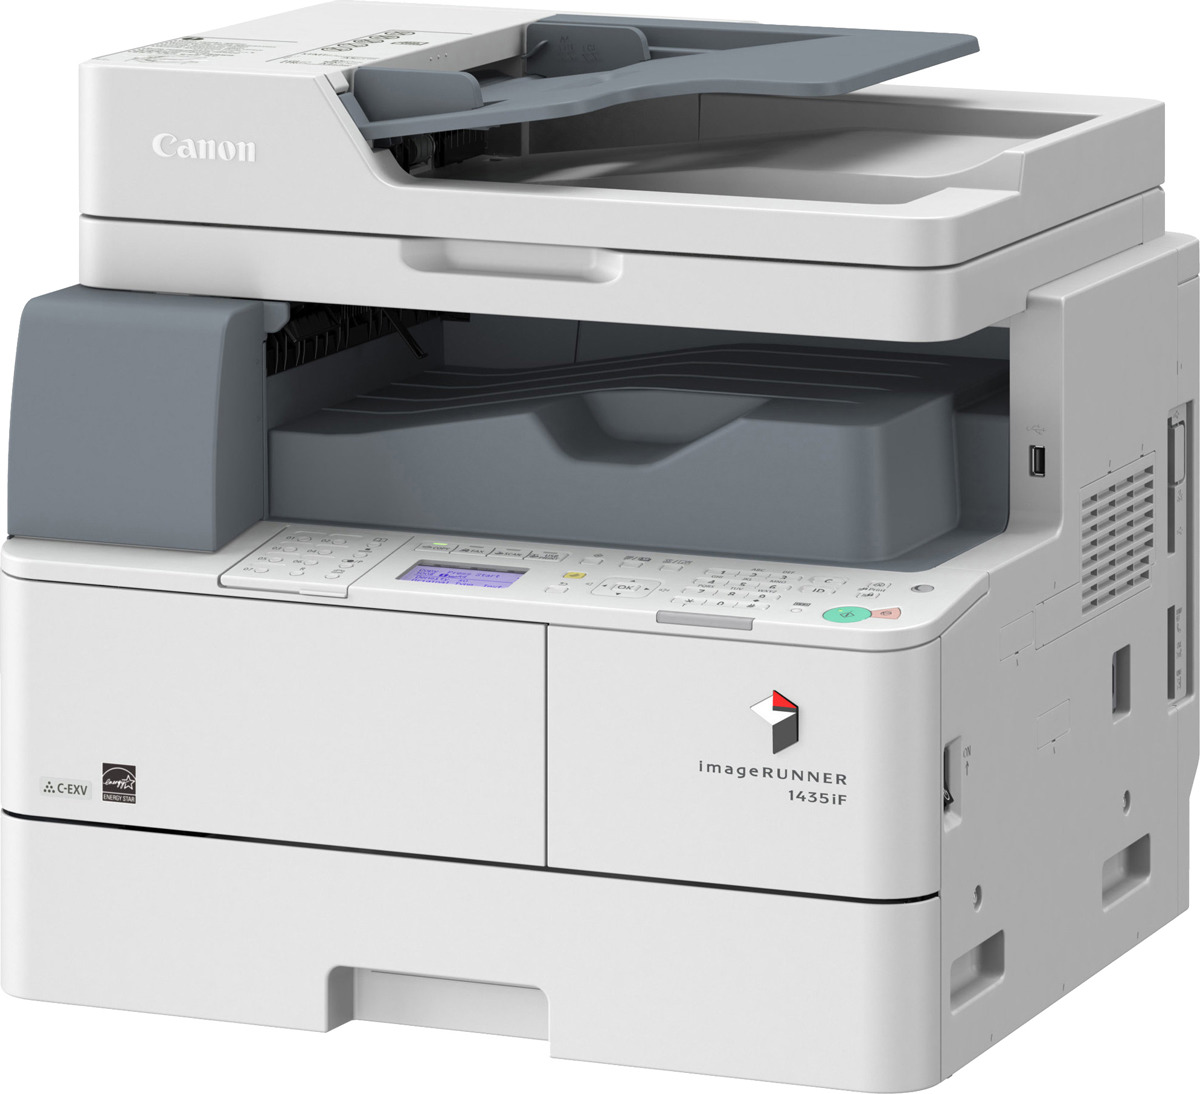 Копир Canon imageRUNNER 1435iF MFP, 9507B004